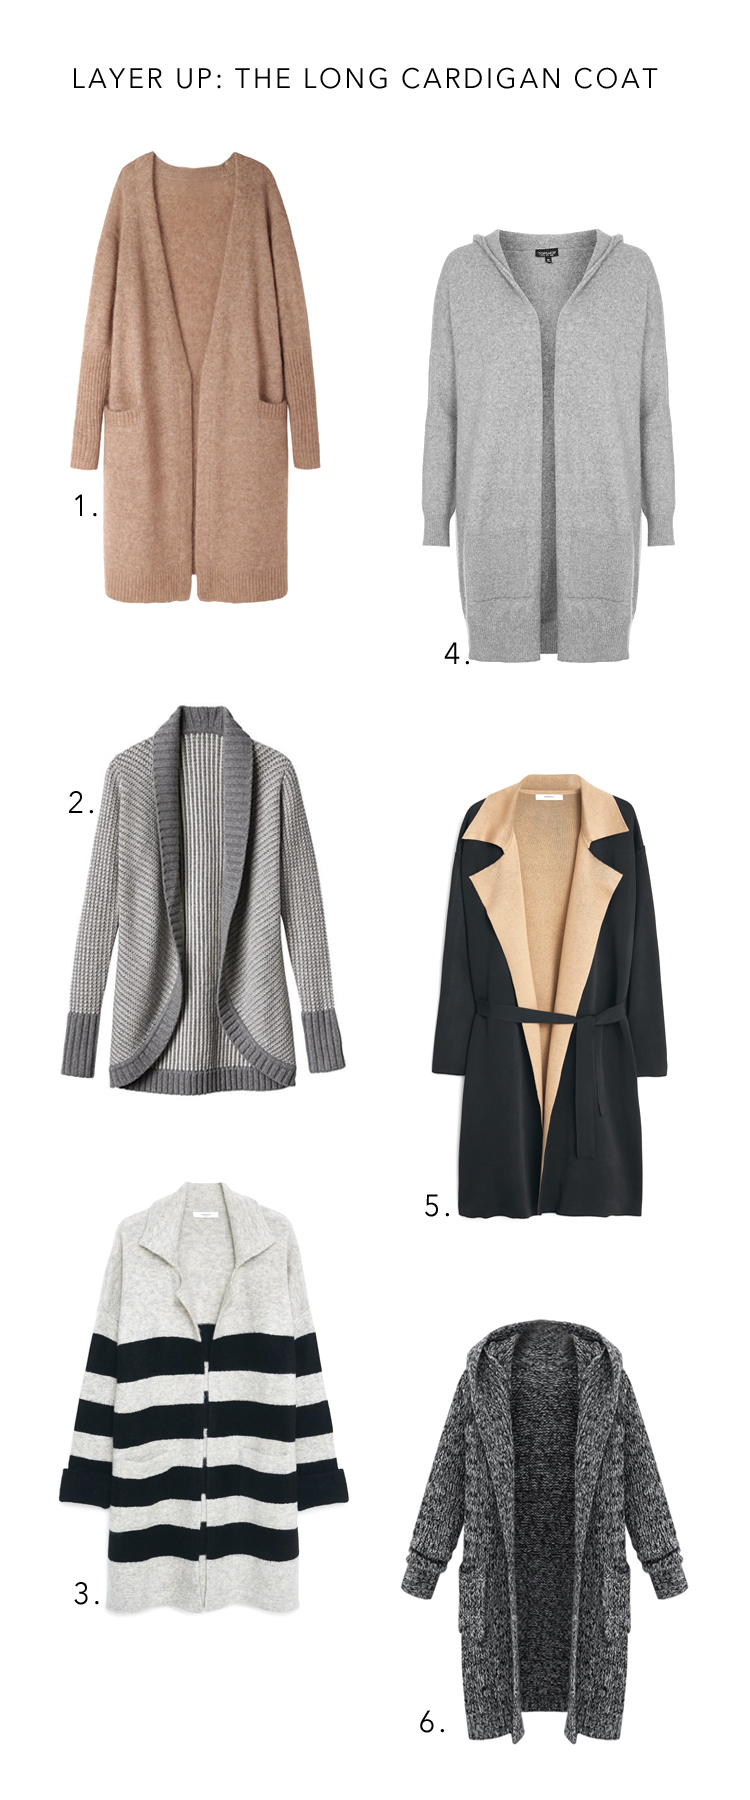 the best long cardigan coats for winter layering in style || Anne Sage